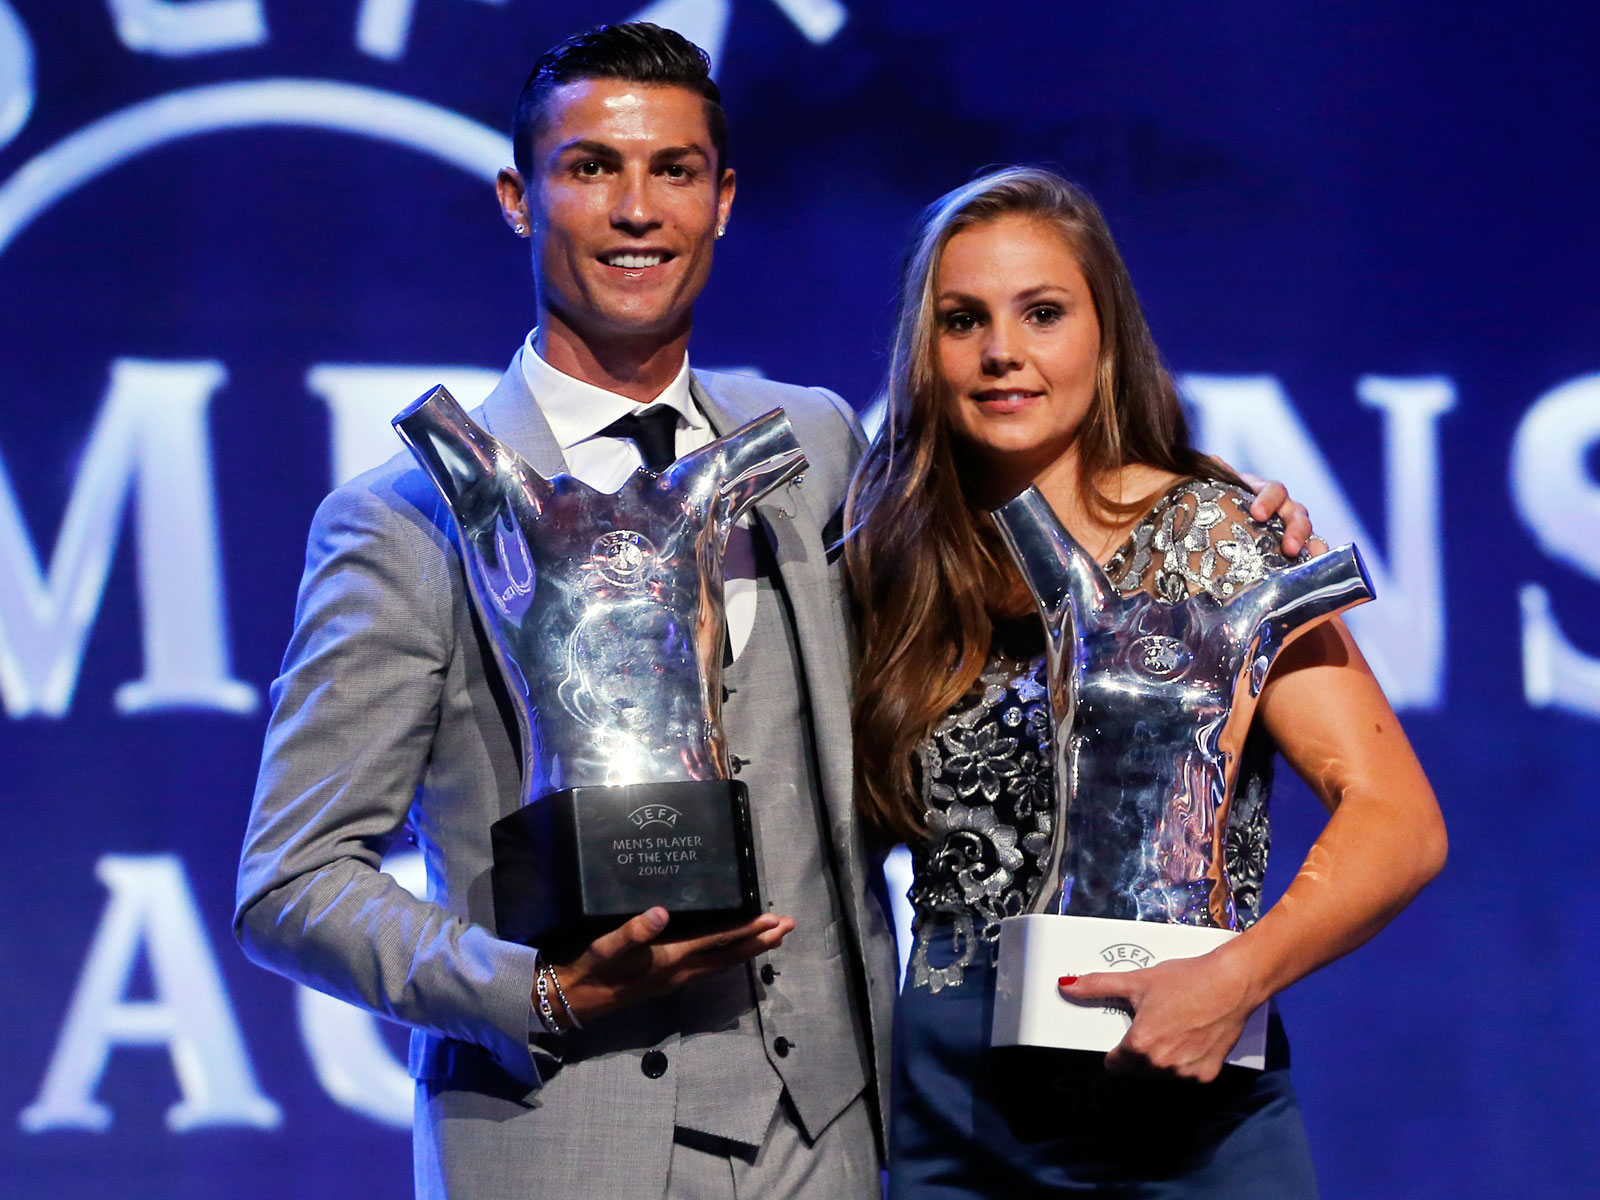 Cristiano Ronaldo and Lieke Martens are finalists for FIFA's men's and women's player of the year